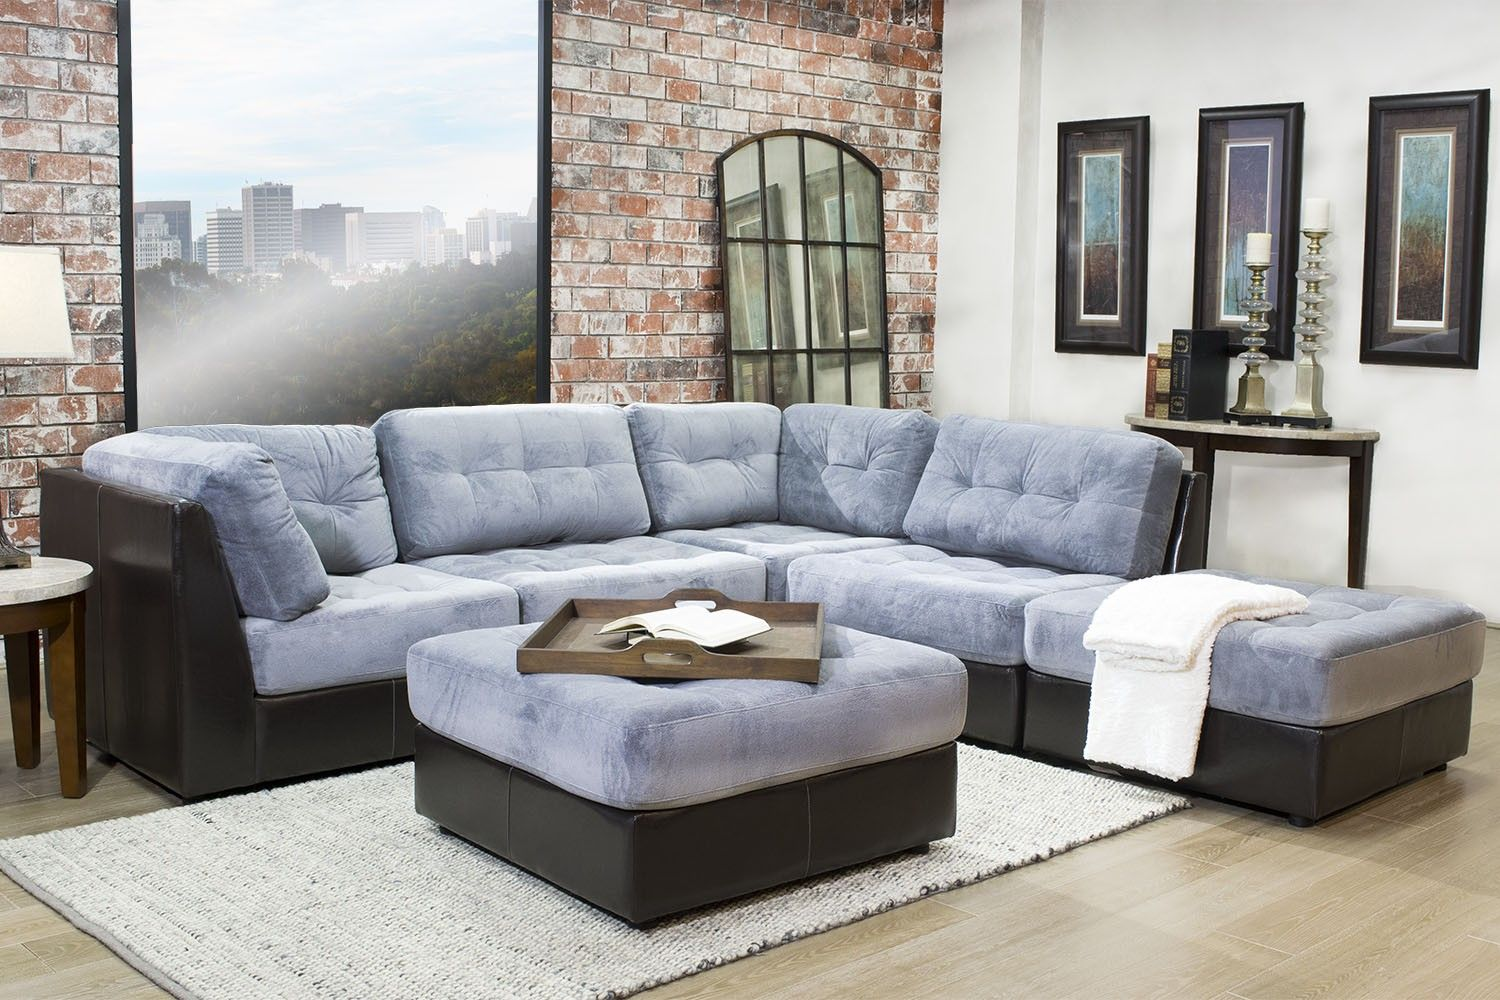 Living Room Sets For Less quantum gray 5-piece sectional - sectionals - living room | mor